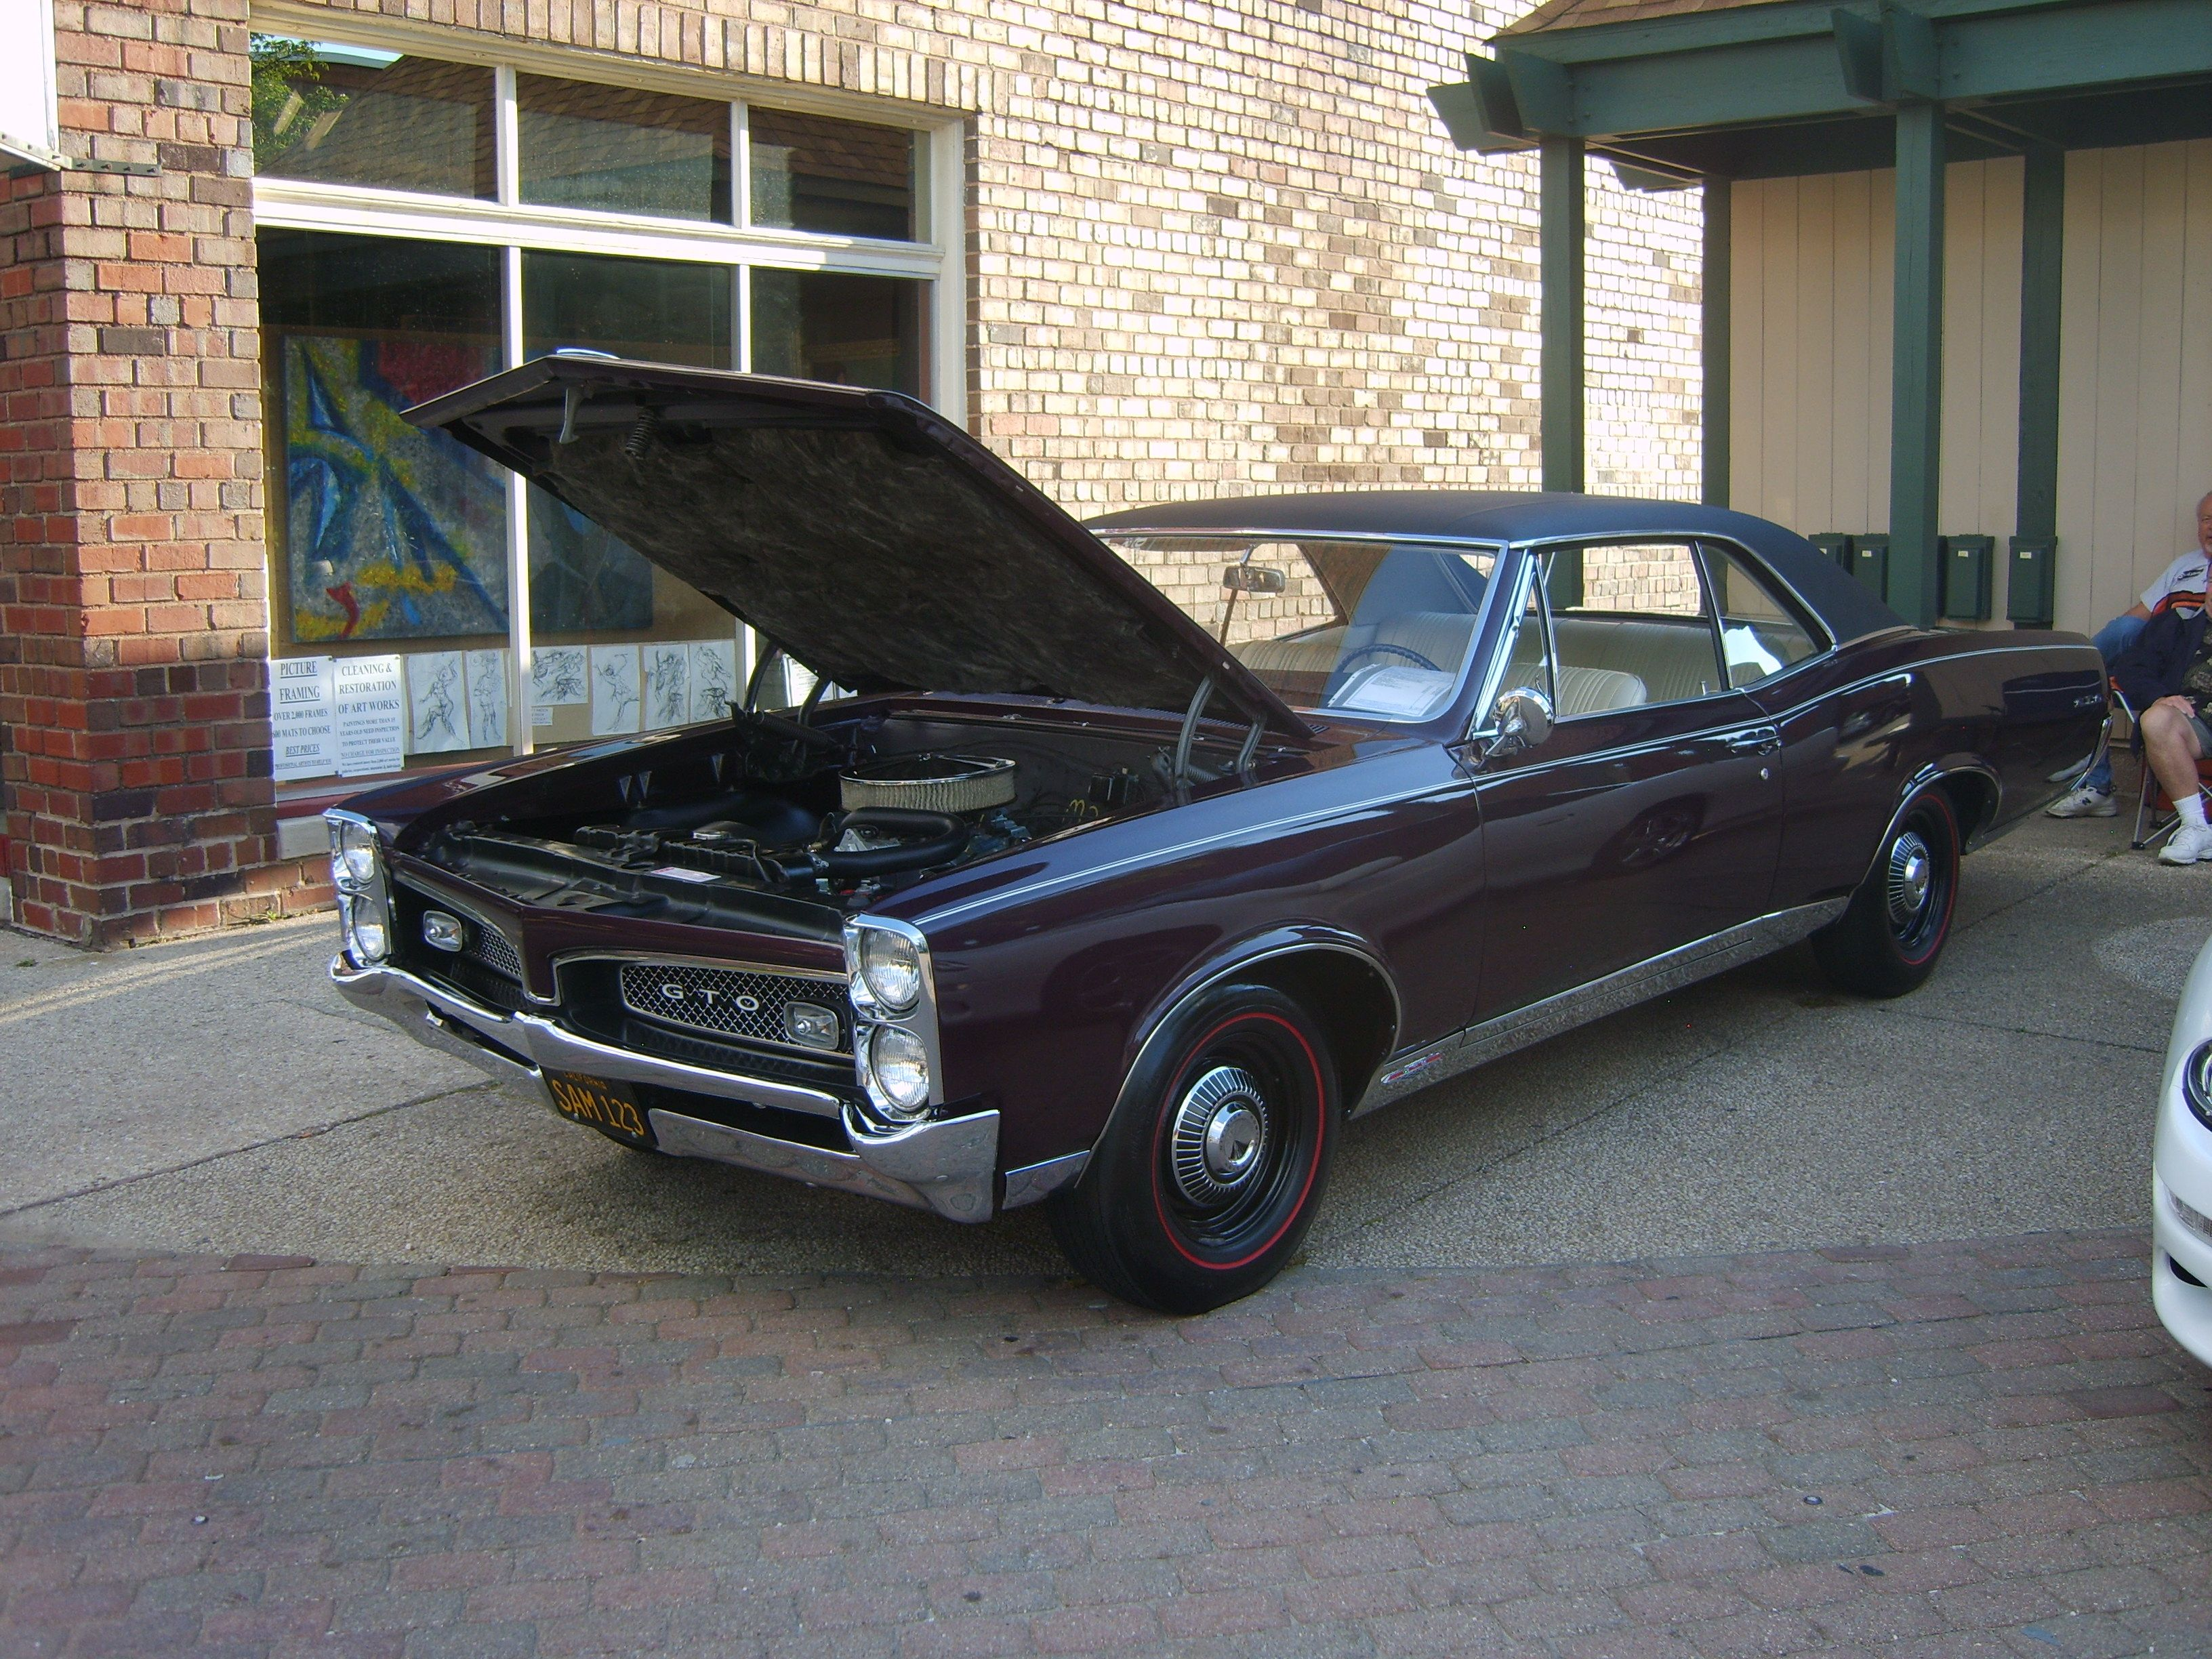 1967 #GTO as seen at the Riverfront Cruise In, Cuyahoga Falls, OH